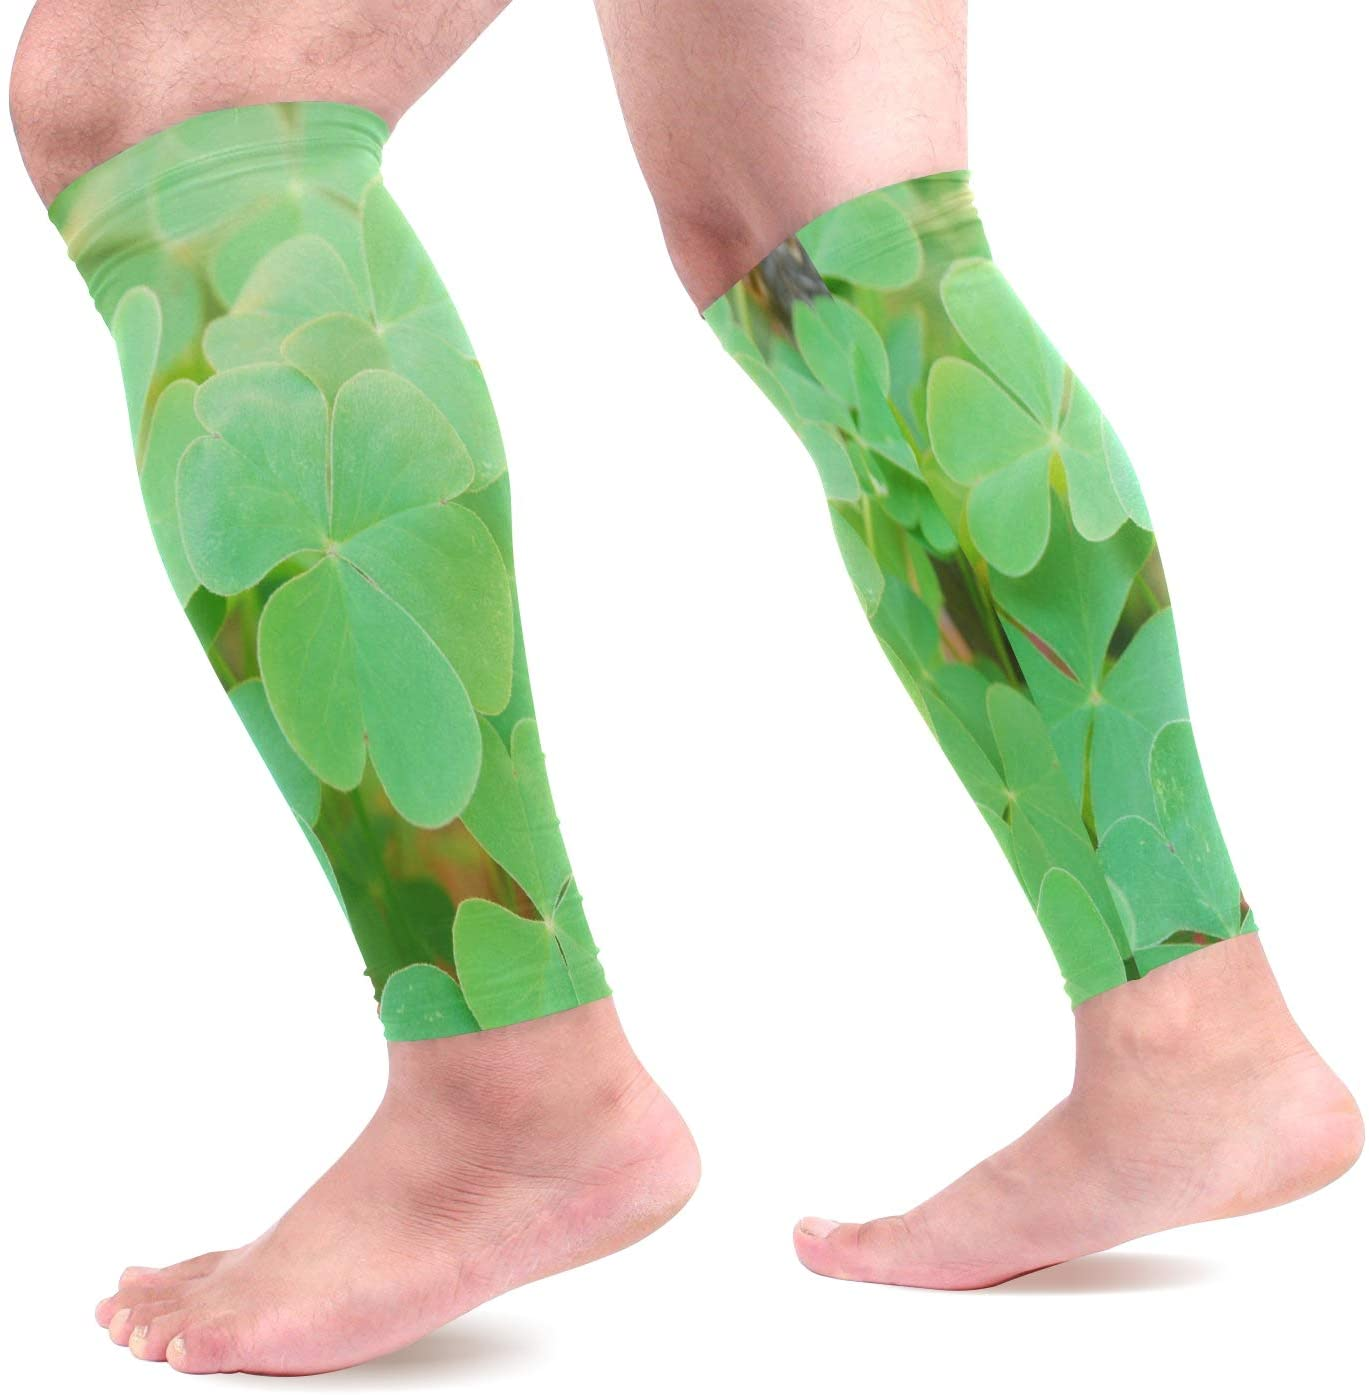 Calf Compression Sleeves Vector Beautiful Wild Clovers Leg Compression Socks for Runners, Shin Splint, Varicose Vein & Calf Pain Relief - Calf Guard for Running, Cycling, Maternity, Nurses Women